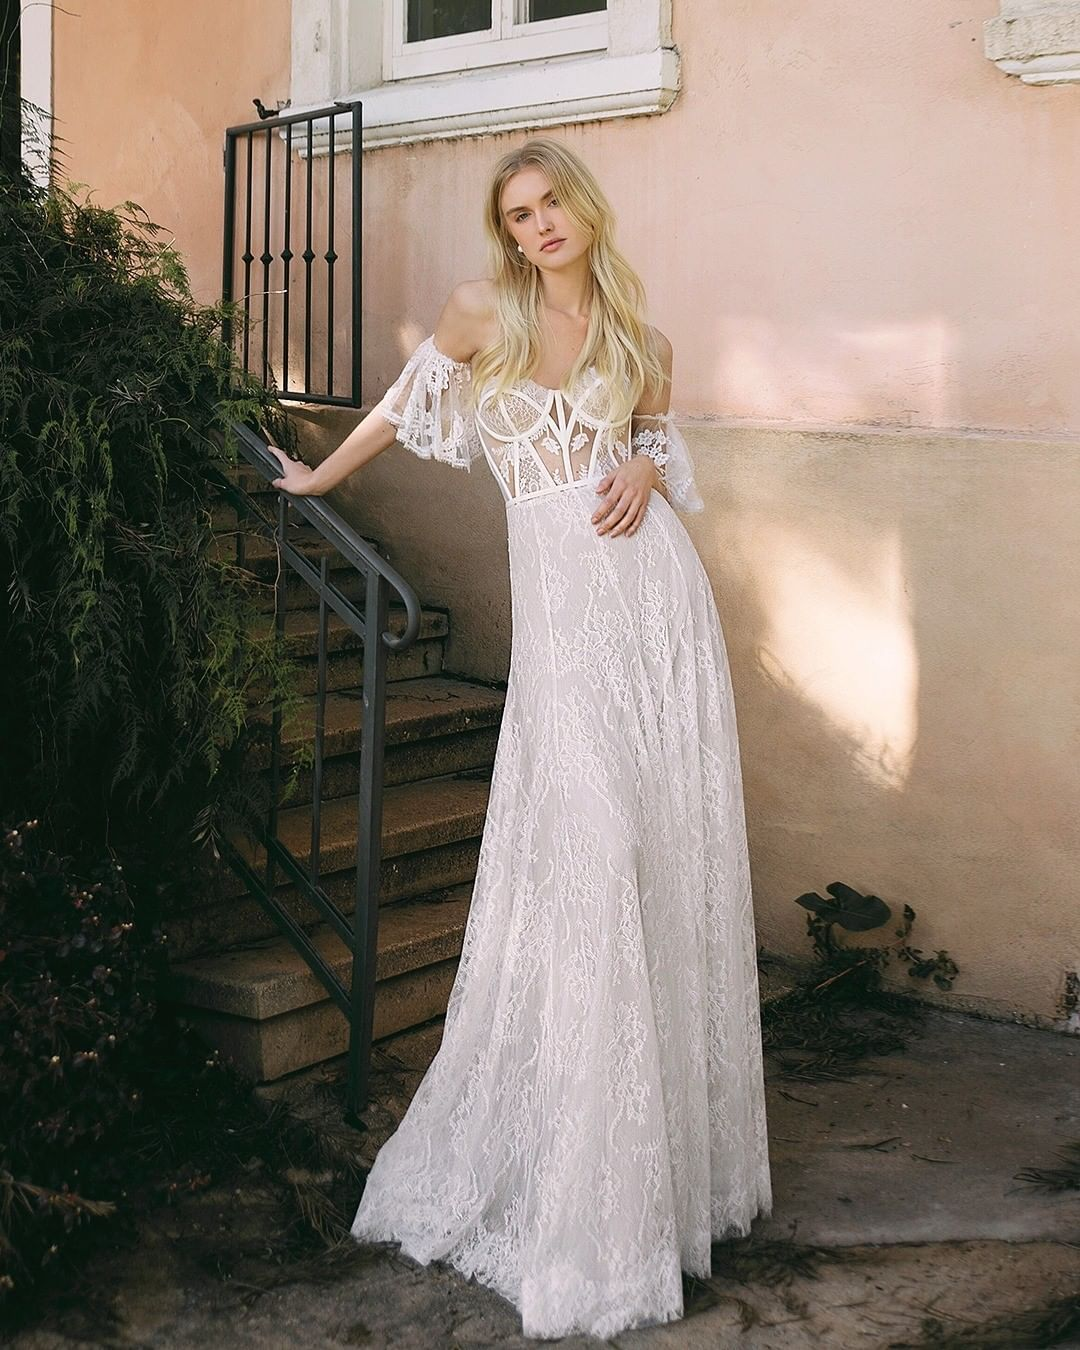 'Eve' an alllace sweetheart corset wedding gown with